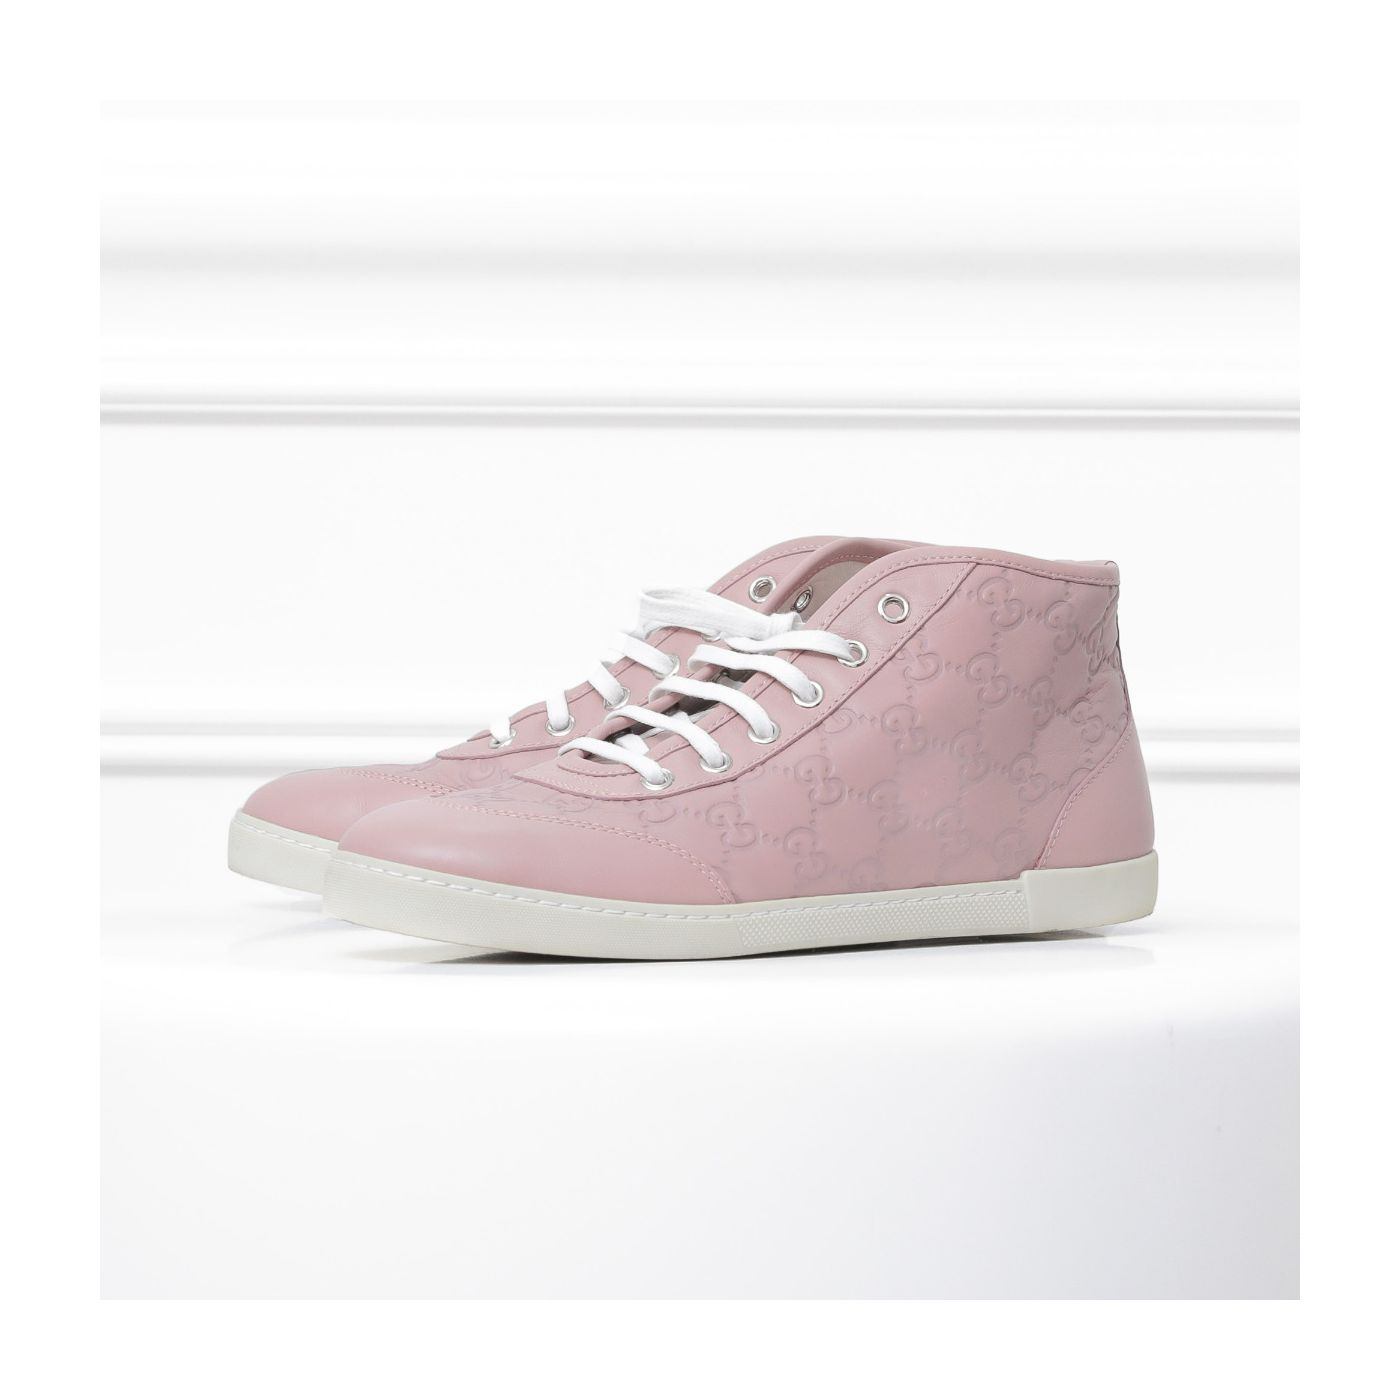 Gucci Tricolor High Cut Sneakers 37.5